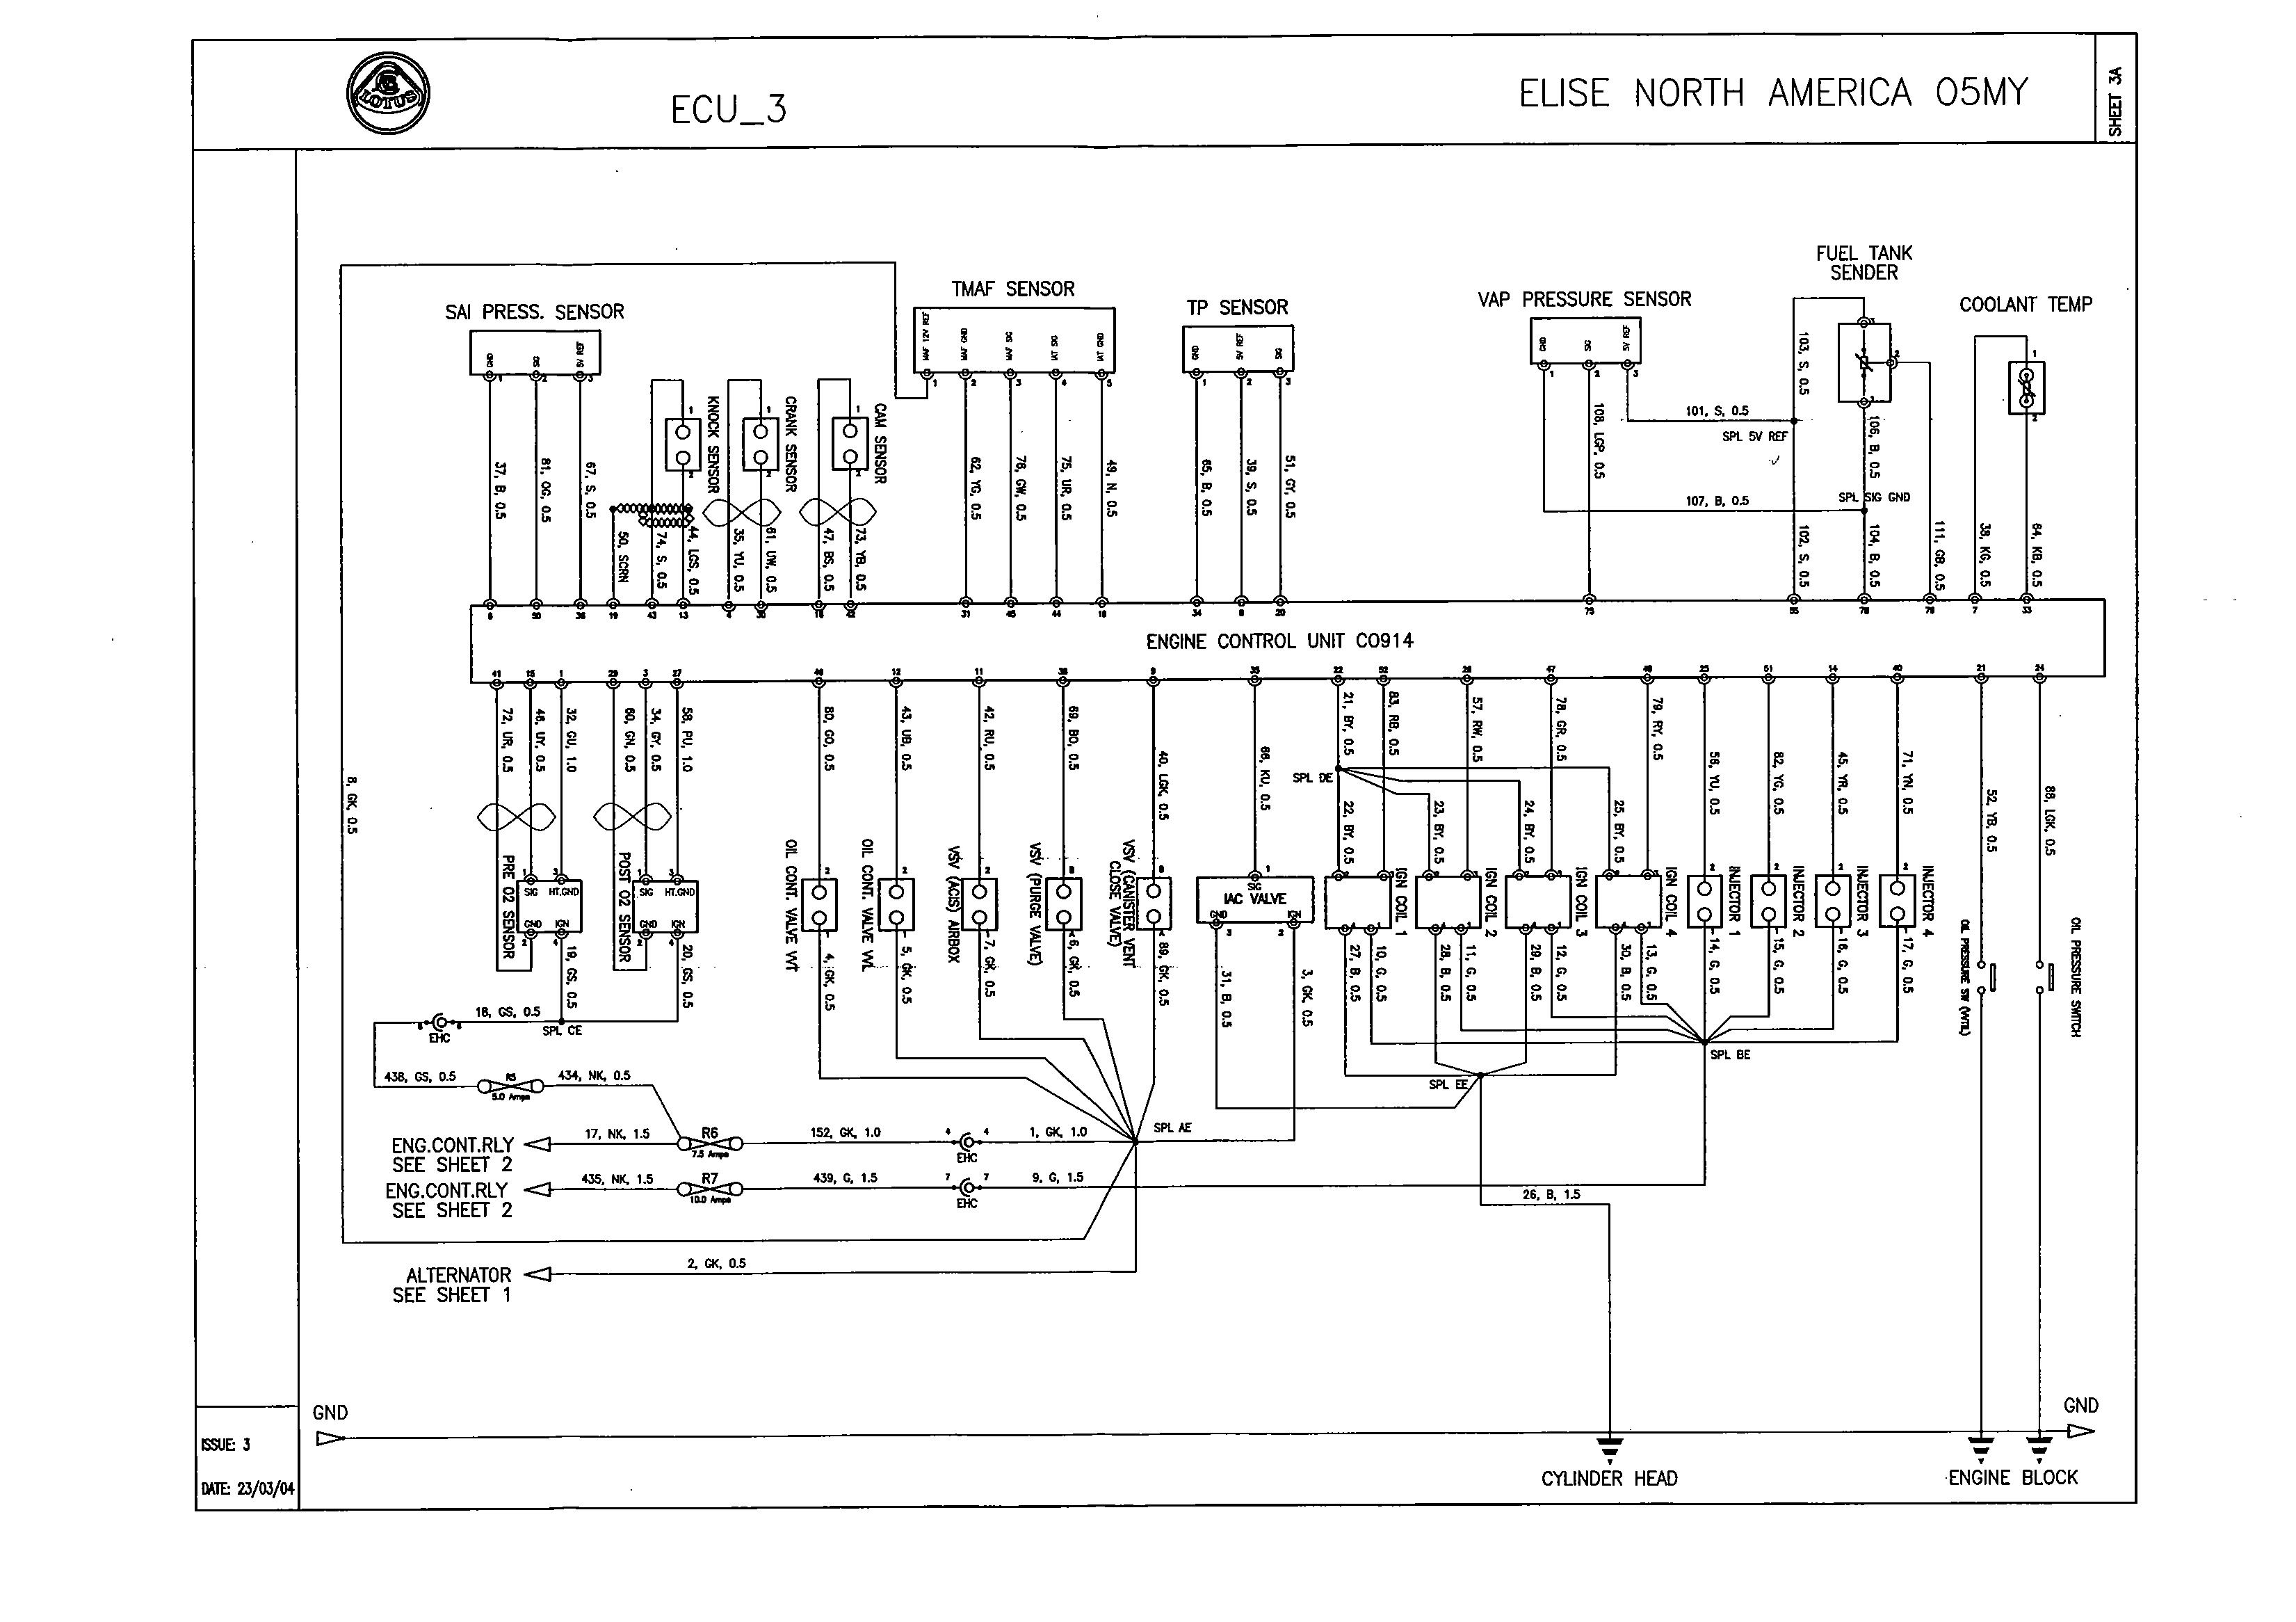 cobra alarm 8165 wiring diagram wiring diagram and schematic design 1967 pontiac gto wiring diagram digital